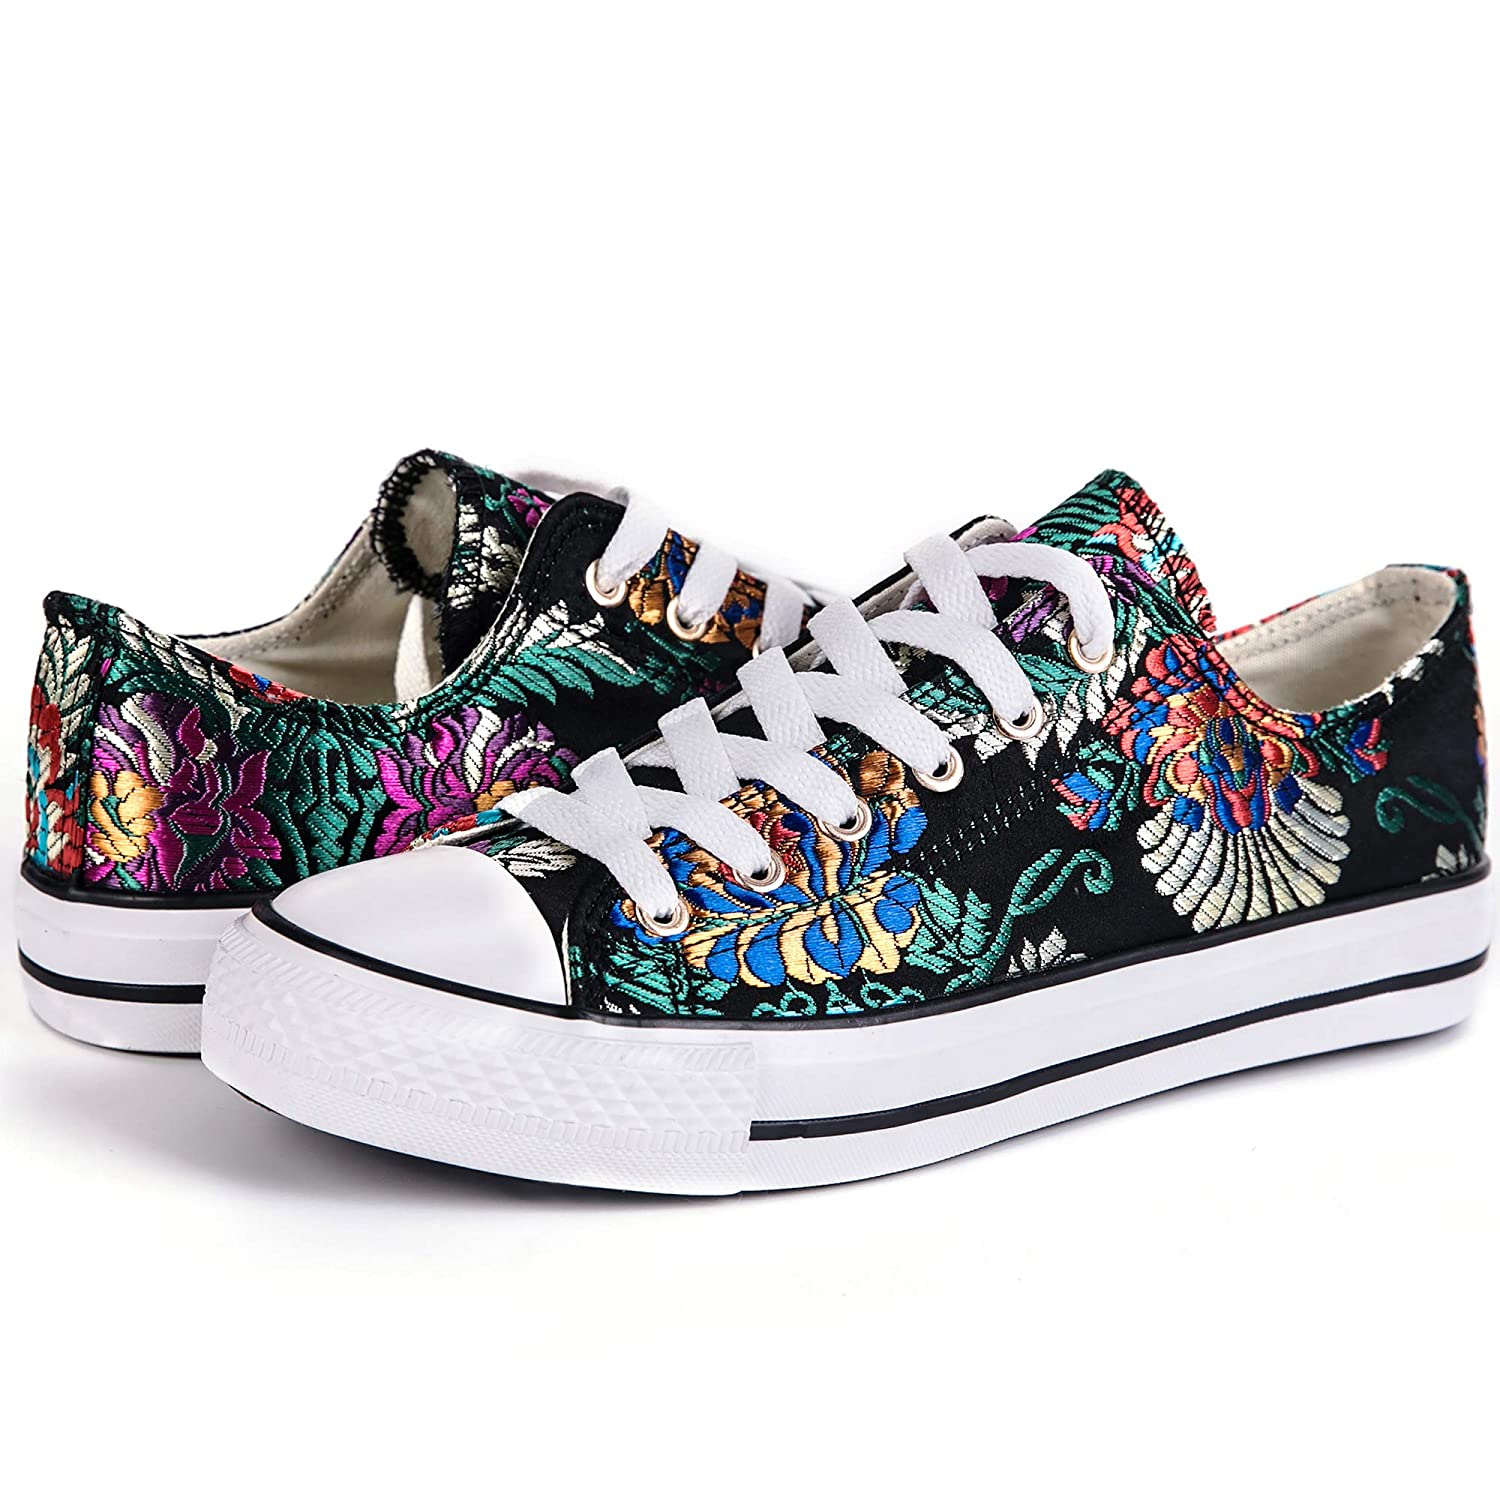 Lantina Womens Low Top Fashion Sneakers Canvas Chucks Shoes Lace Up Comfy for Ladies Girls Tennis Athletic Walking Dress Cute Floral Print and Casual with ...